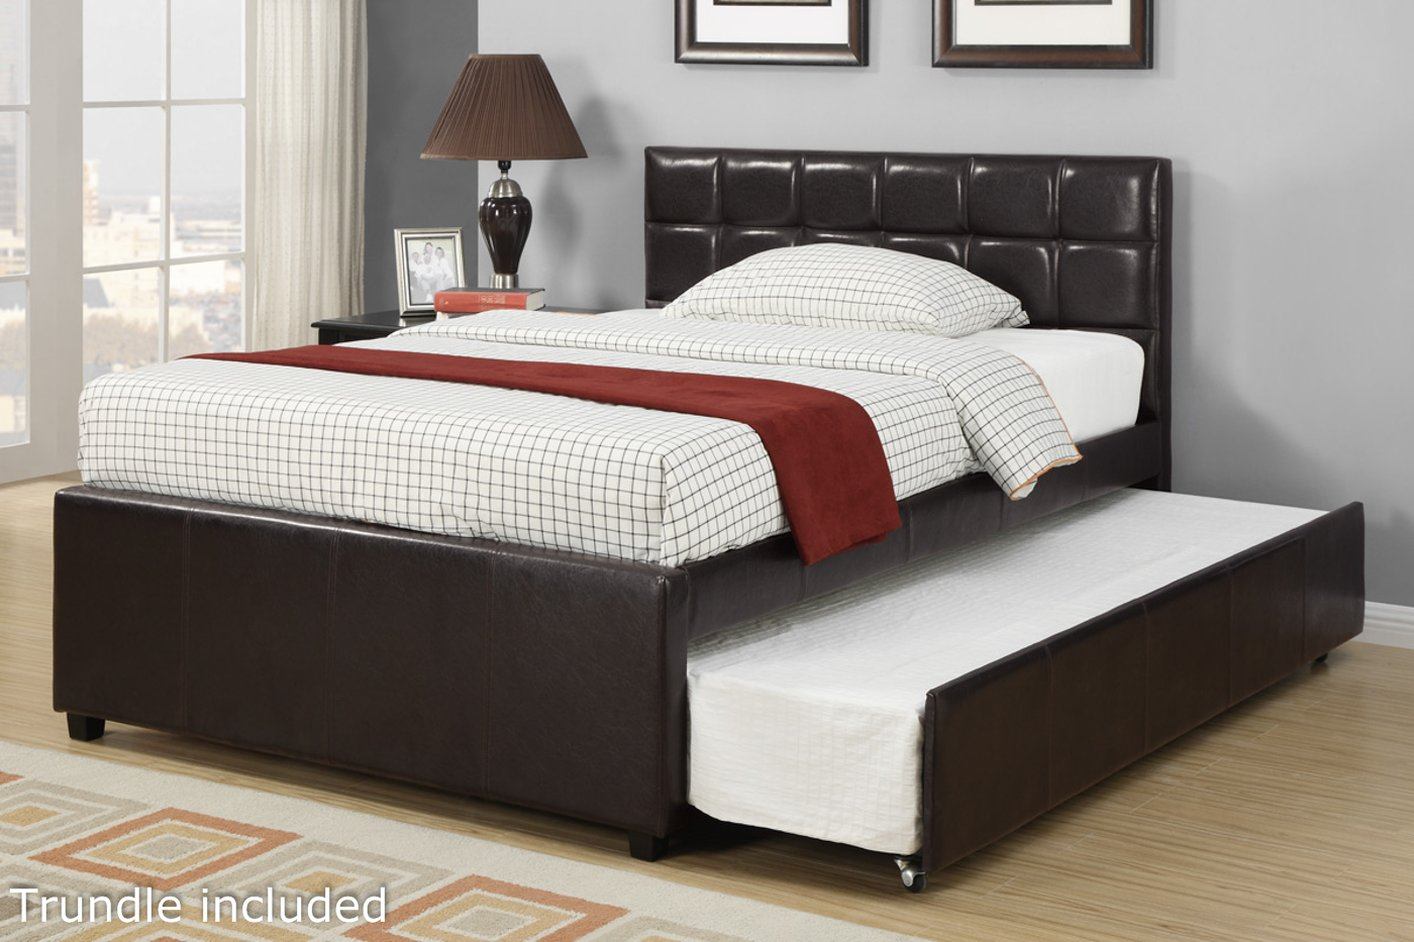 Shop for full size bed frame online at Target. Free shipping on purchases over $35 and save 5% every day with your Target REDcard.